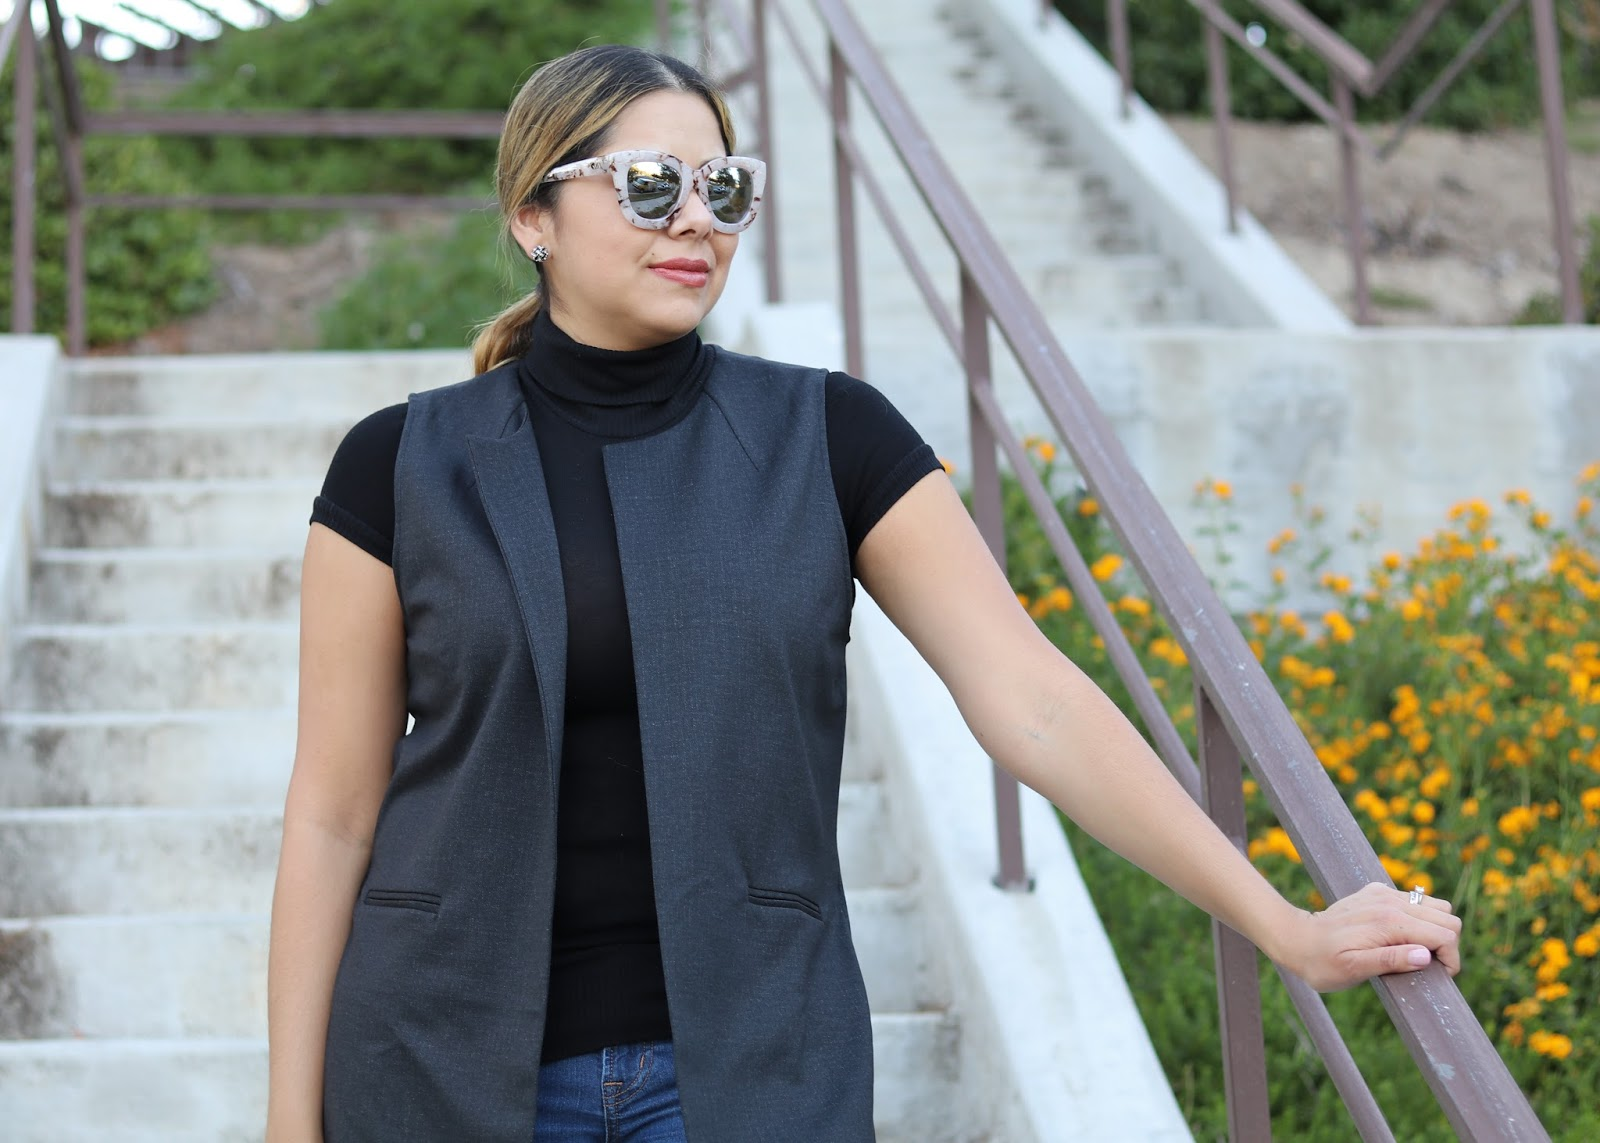 mac liptensity smoked almond, cabi vest, quay sunglasses for fall, latina fashion blogger